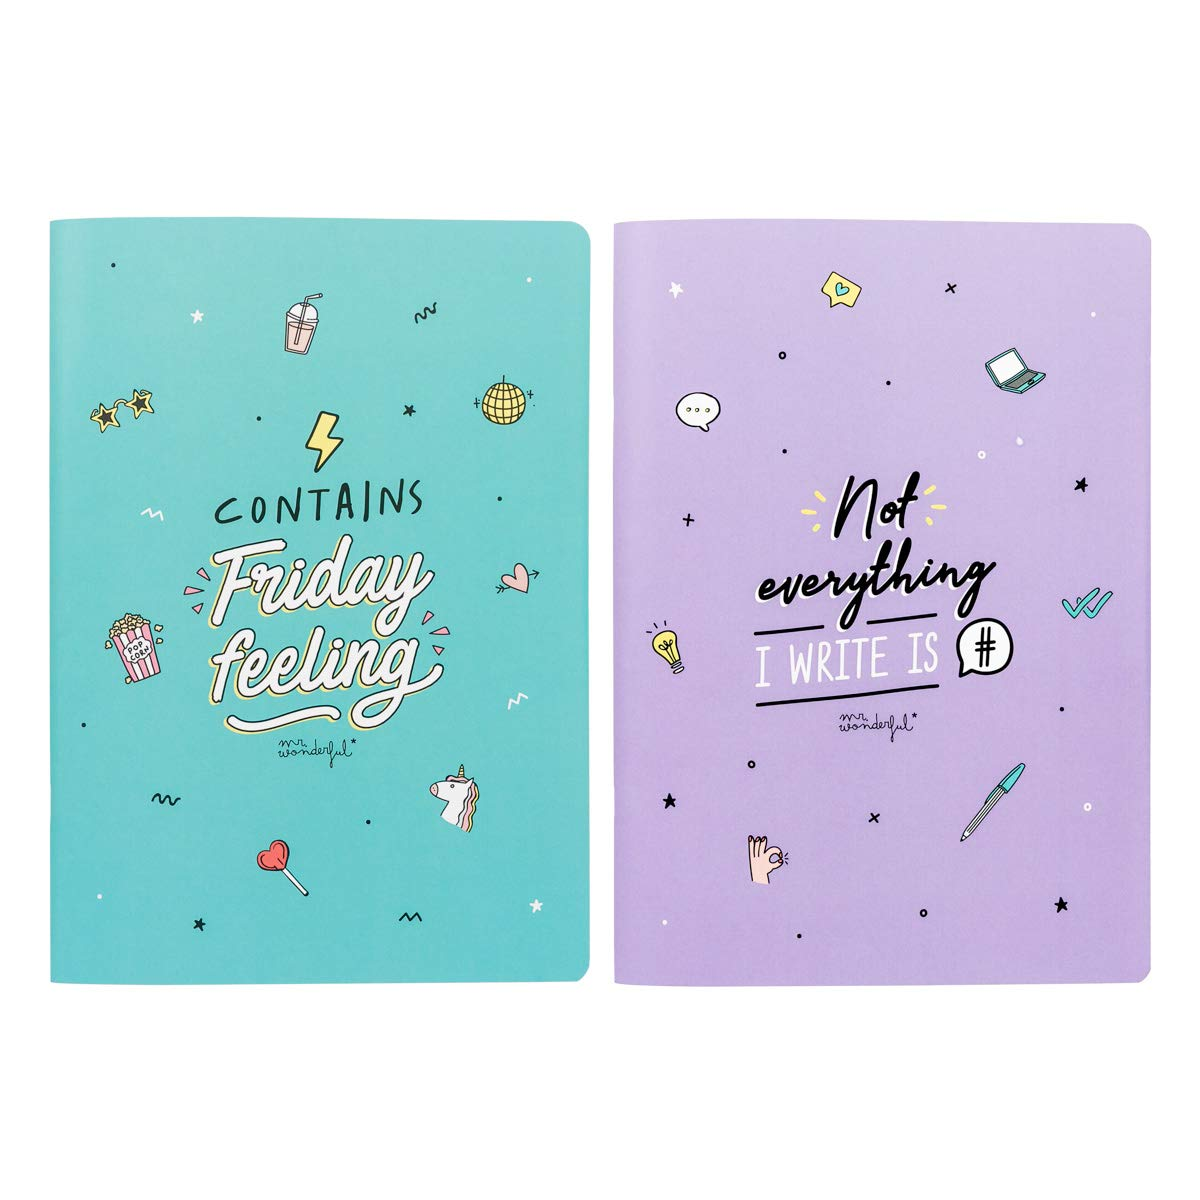 Mr. Wonderful Set of Two A4 notebooks-Contains Friday Feeling, Talla única